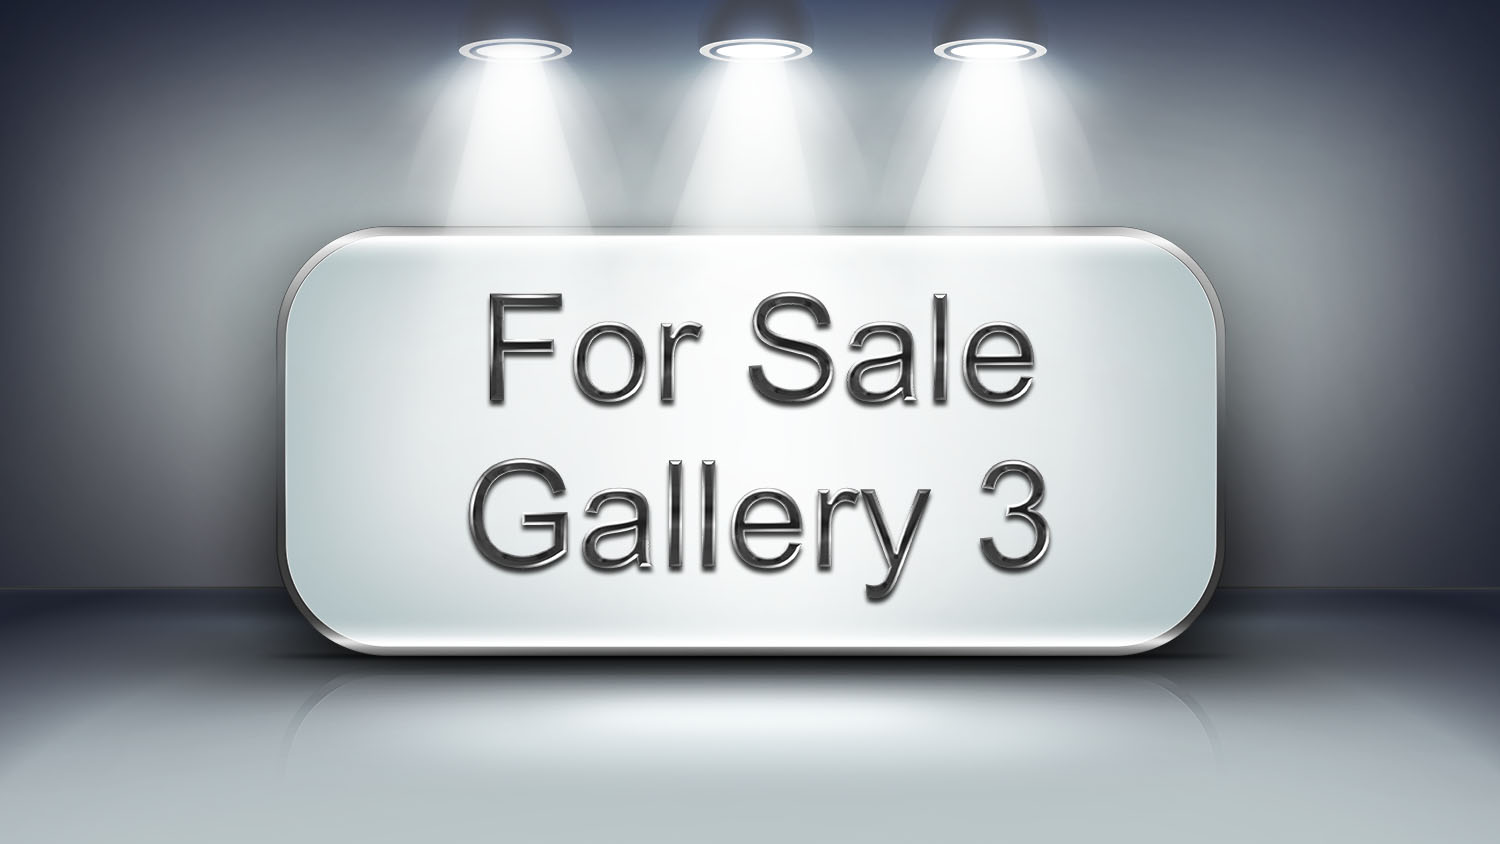 For Sale Gallery 3